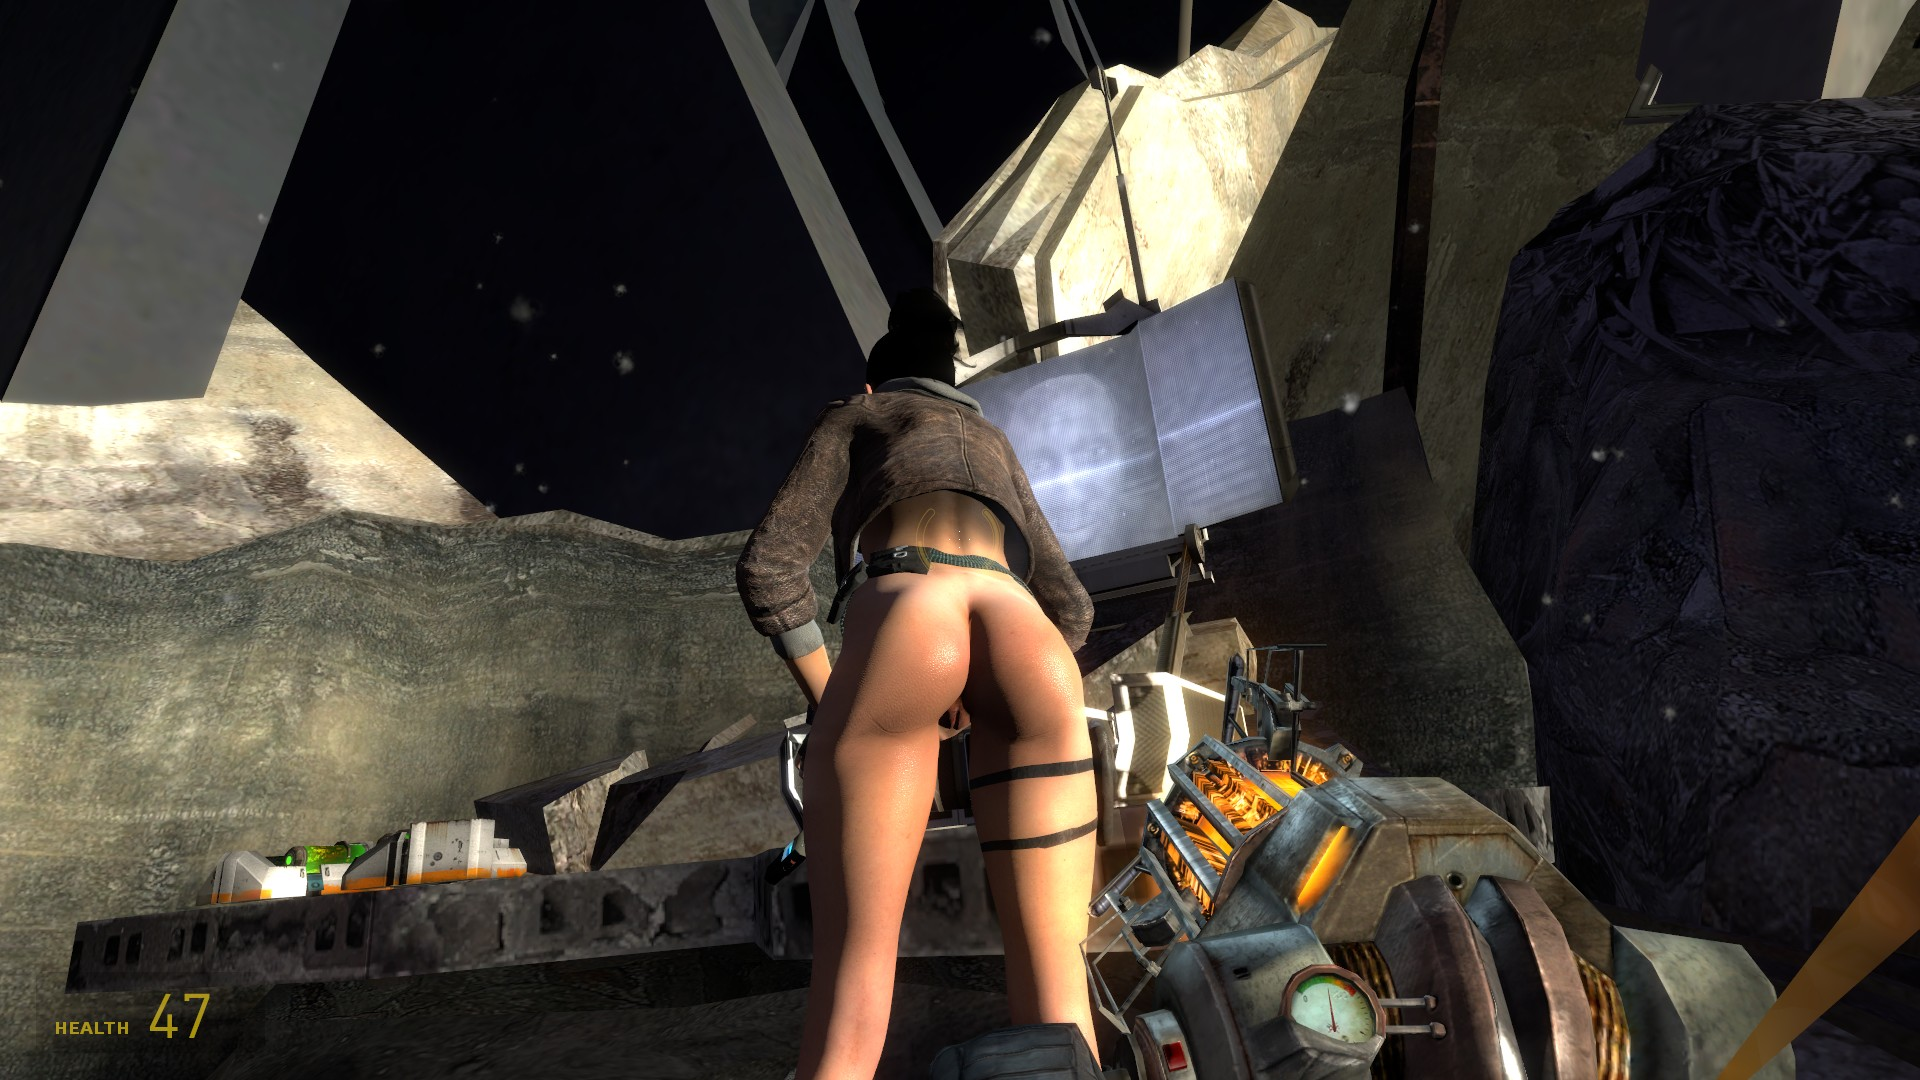 Nude patch half life episode hardcore picture